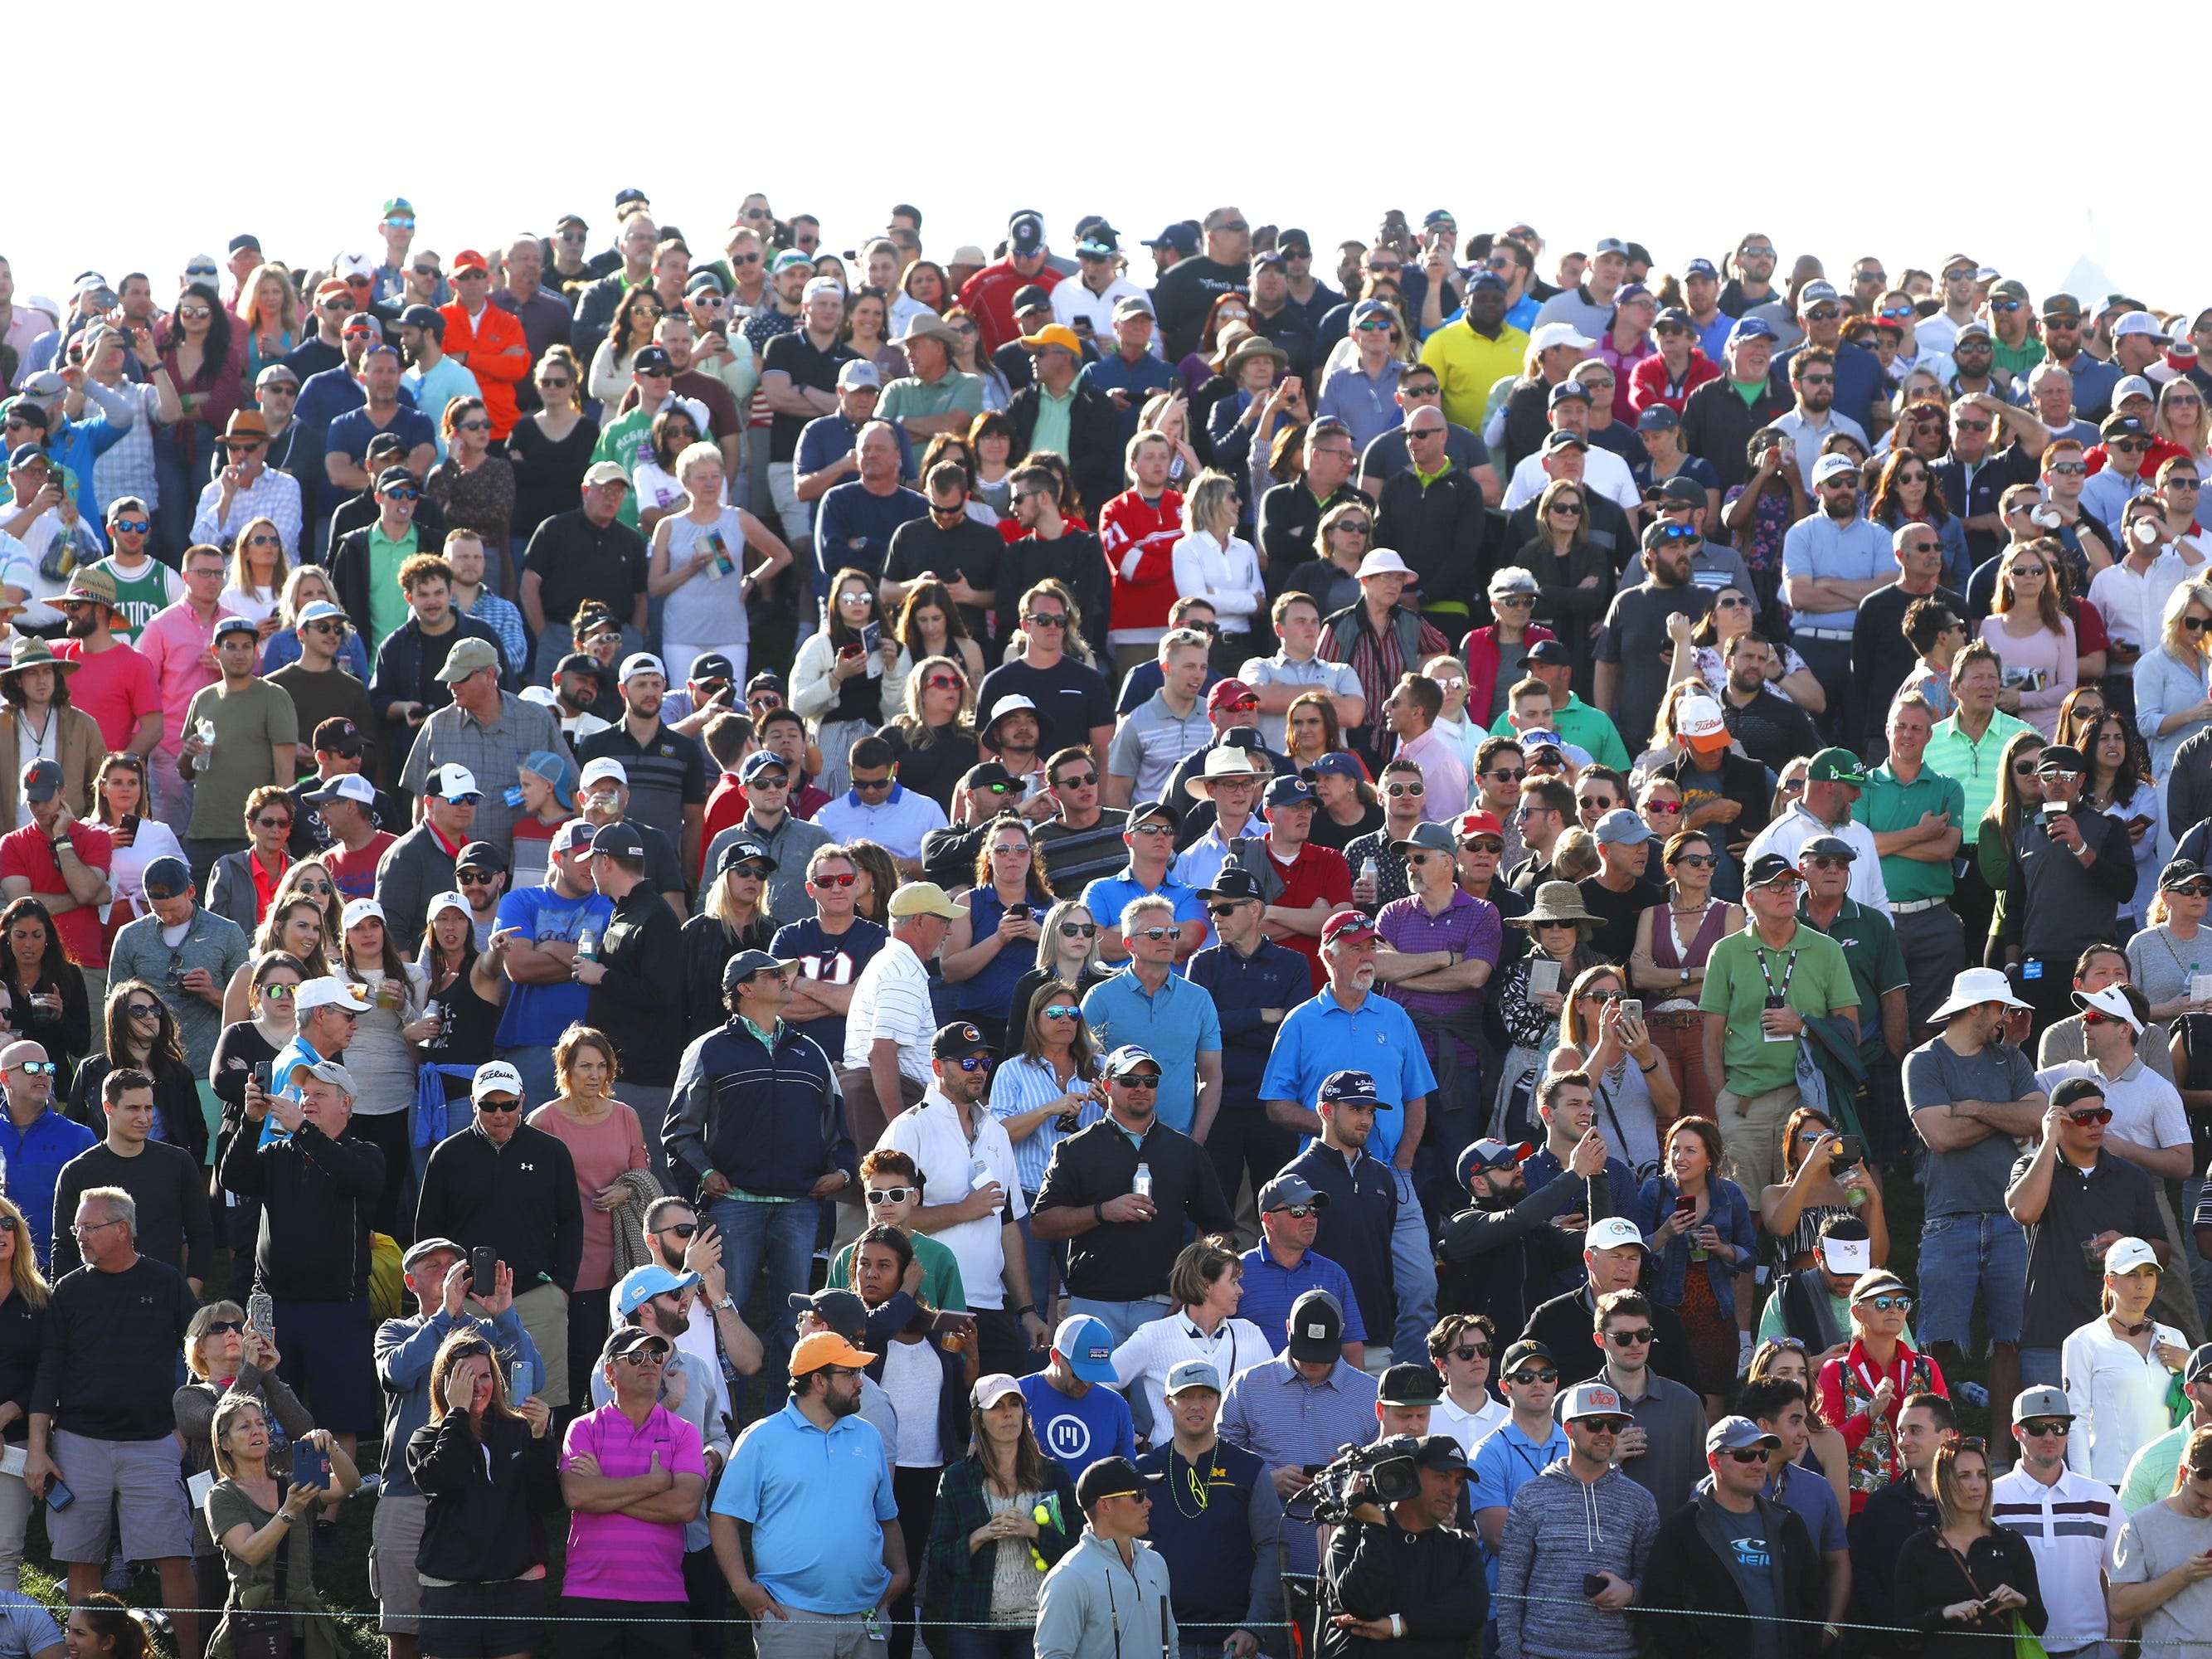 Fans watch Rickie Fowler take to the 18th green during the third round of the Waste Management Phoenix Open at TPC Scottsdale in Scottsdale, Ariz. on February 2, 2019.